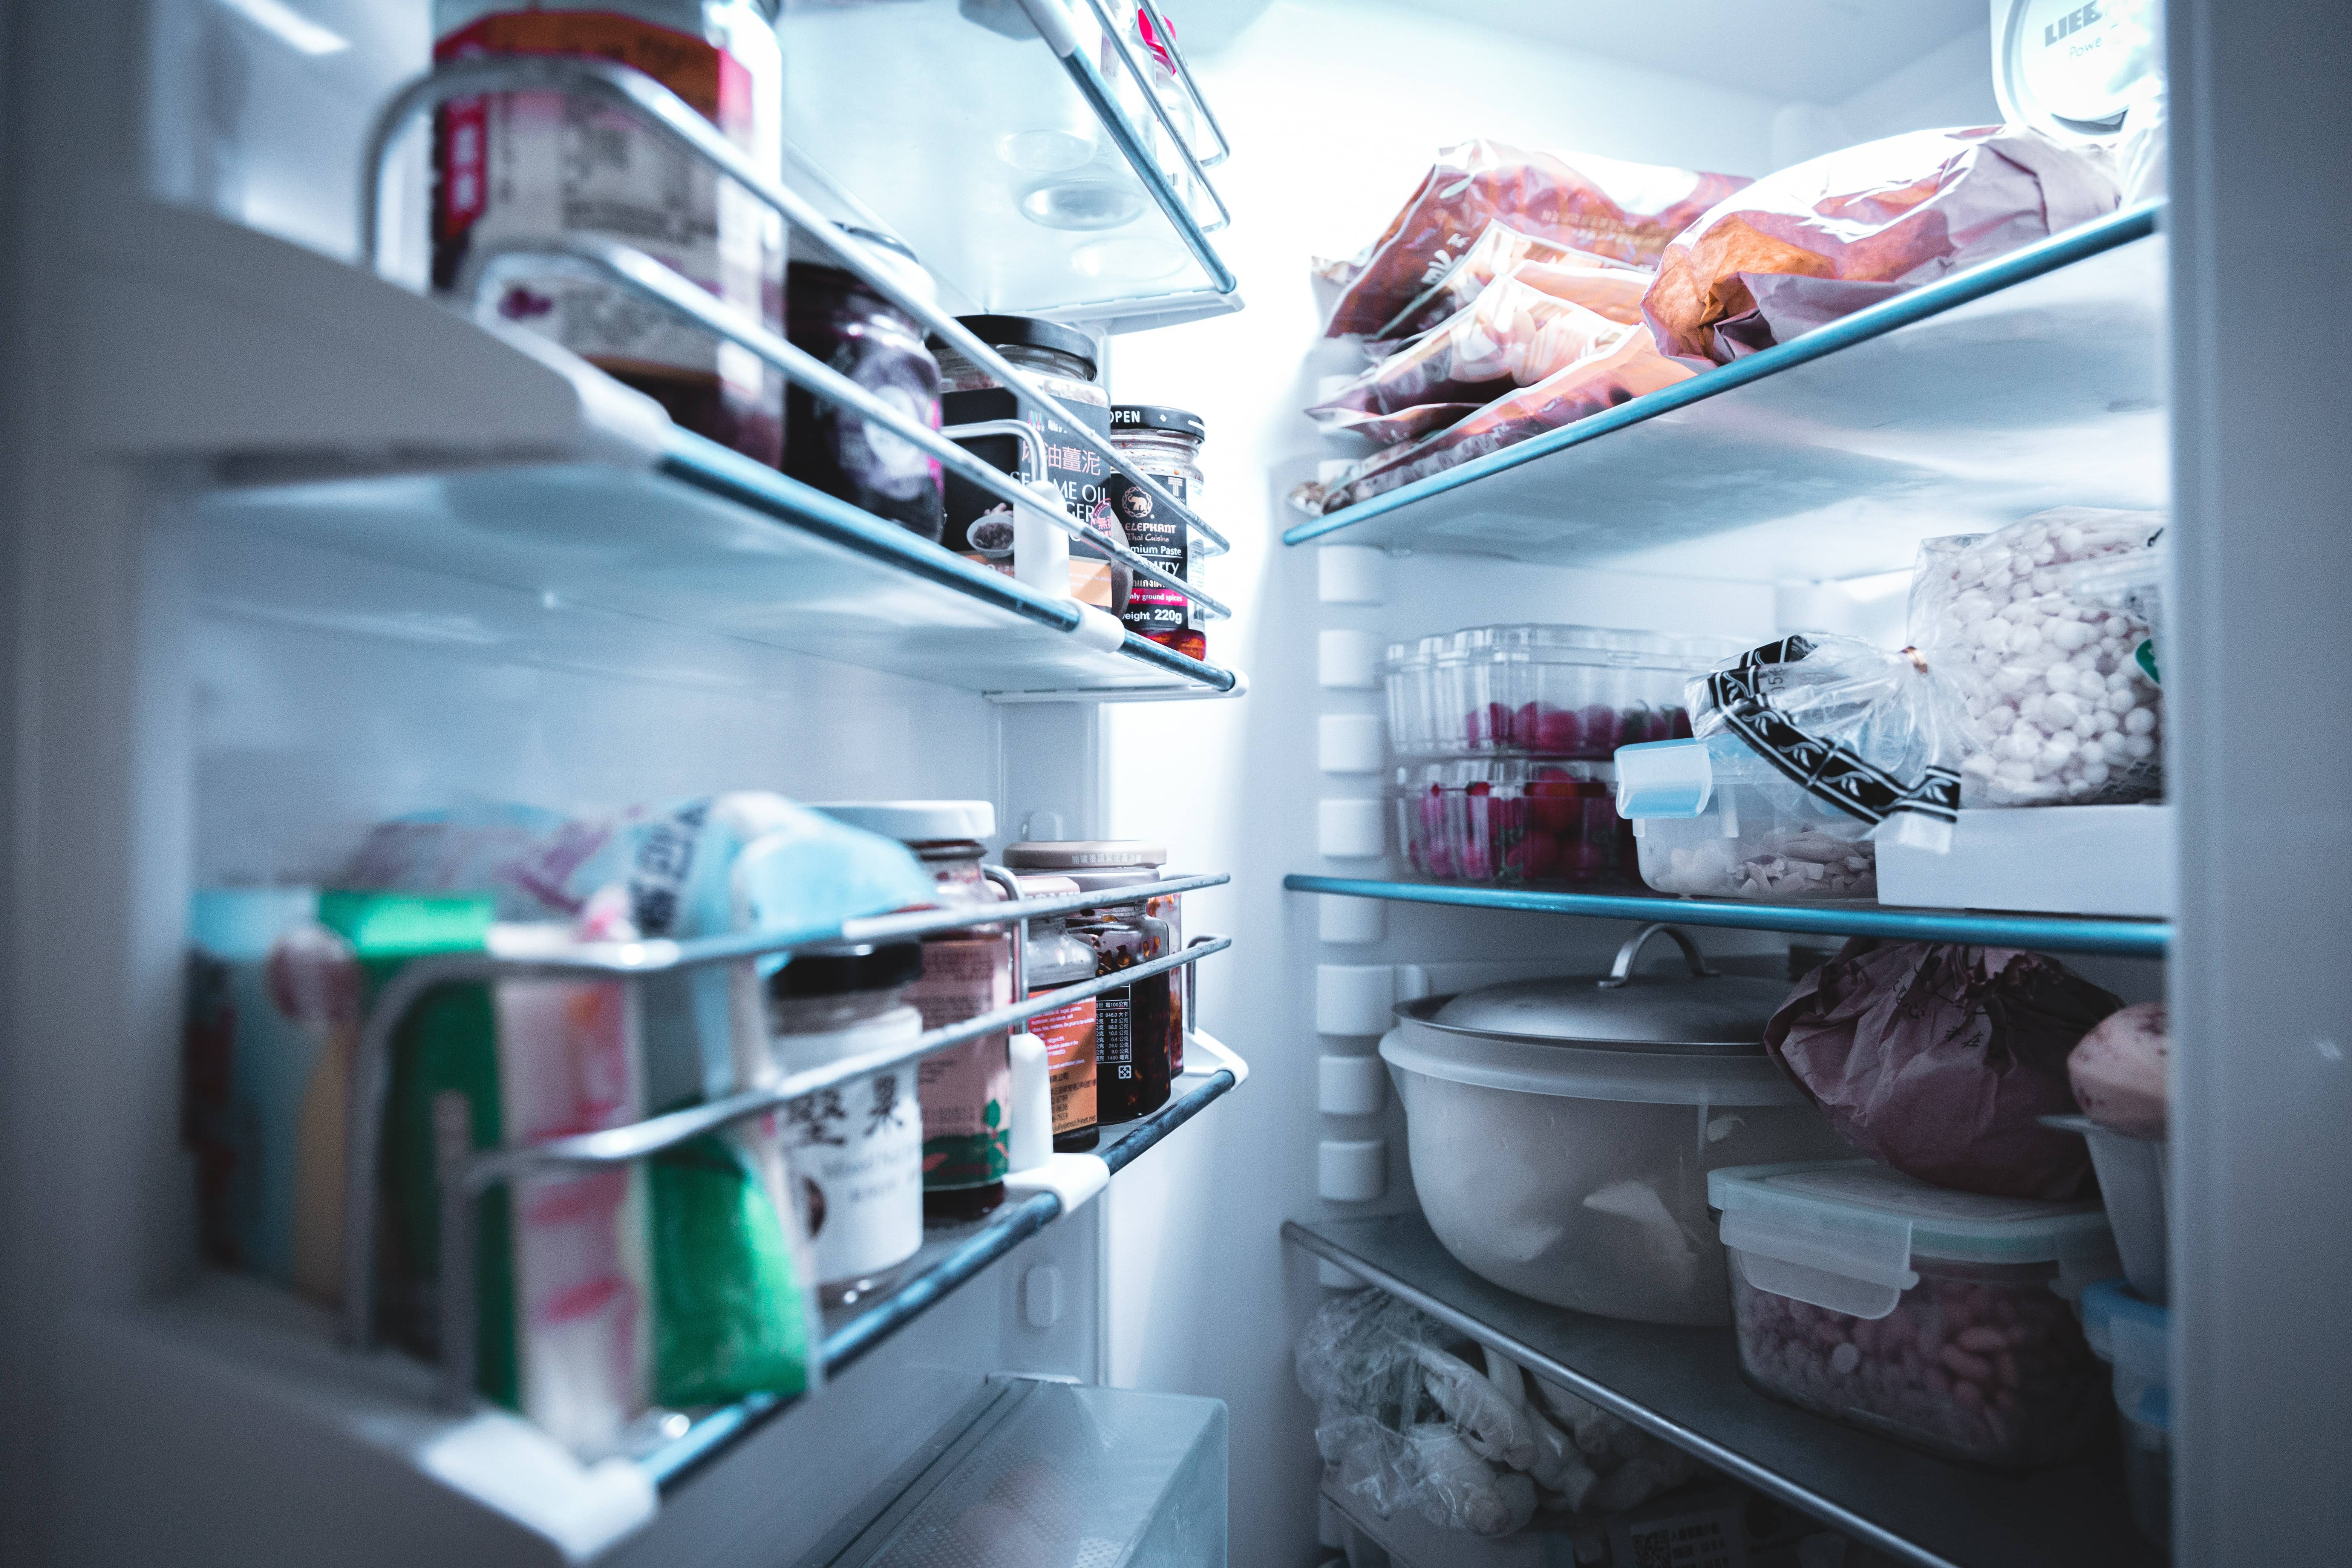 Spares And Parts Matter For Your Refrigerators